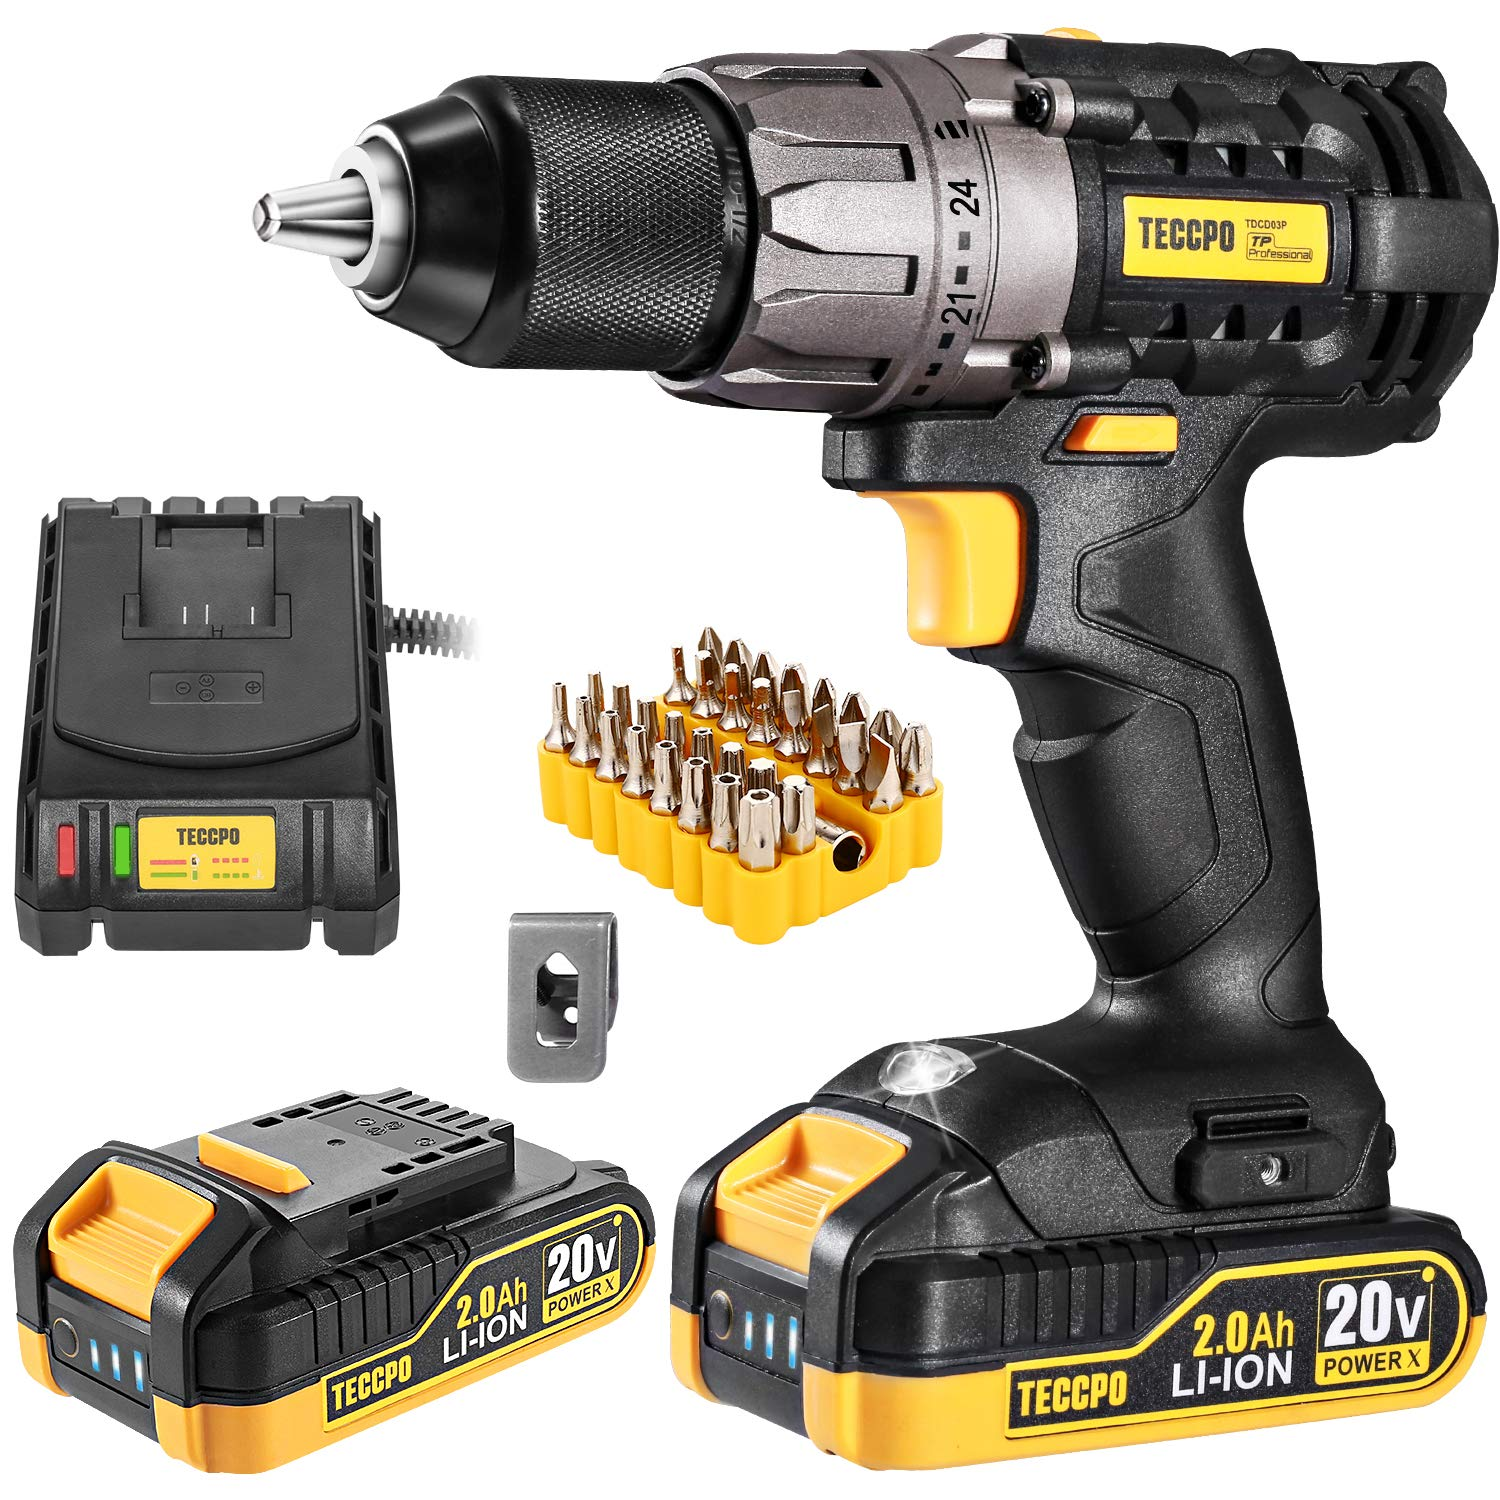 "Cordless Drill, 20V Drill Driver 2x2000mAh Batteries, 530 In-lbs Torque, 24+1 Torque Setting, Fast Charger 2.0A, 0-1700RPM Variable Speed, 33pcs Accessories, 1/2"" Metal Keyless Chuck, TECCPO"